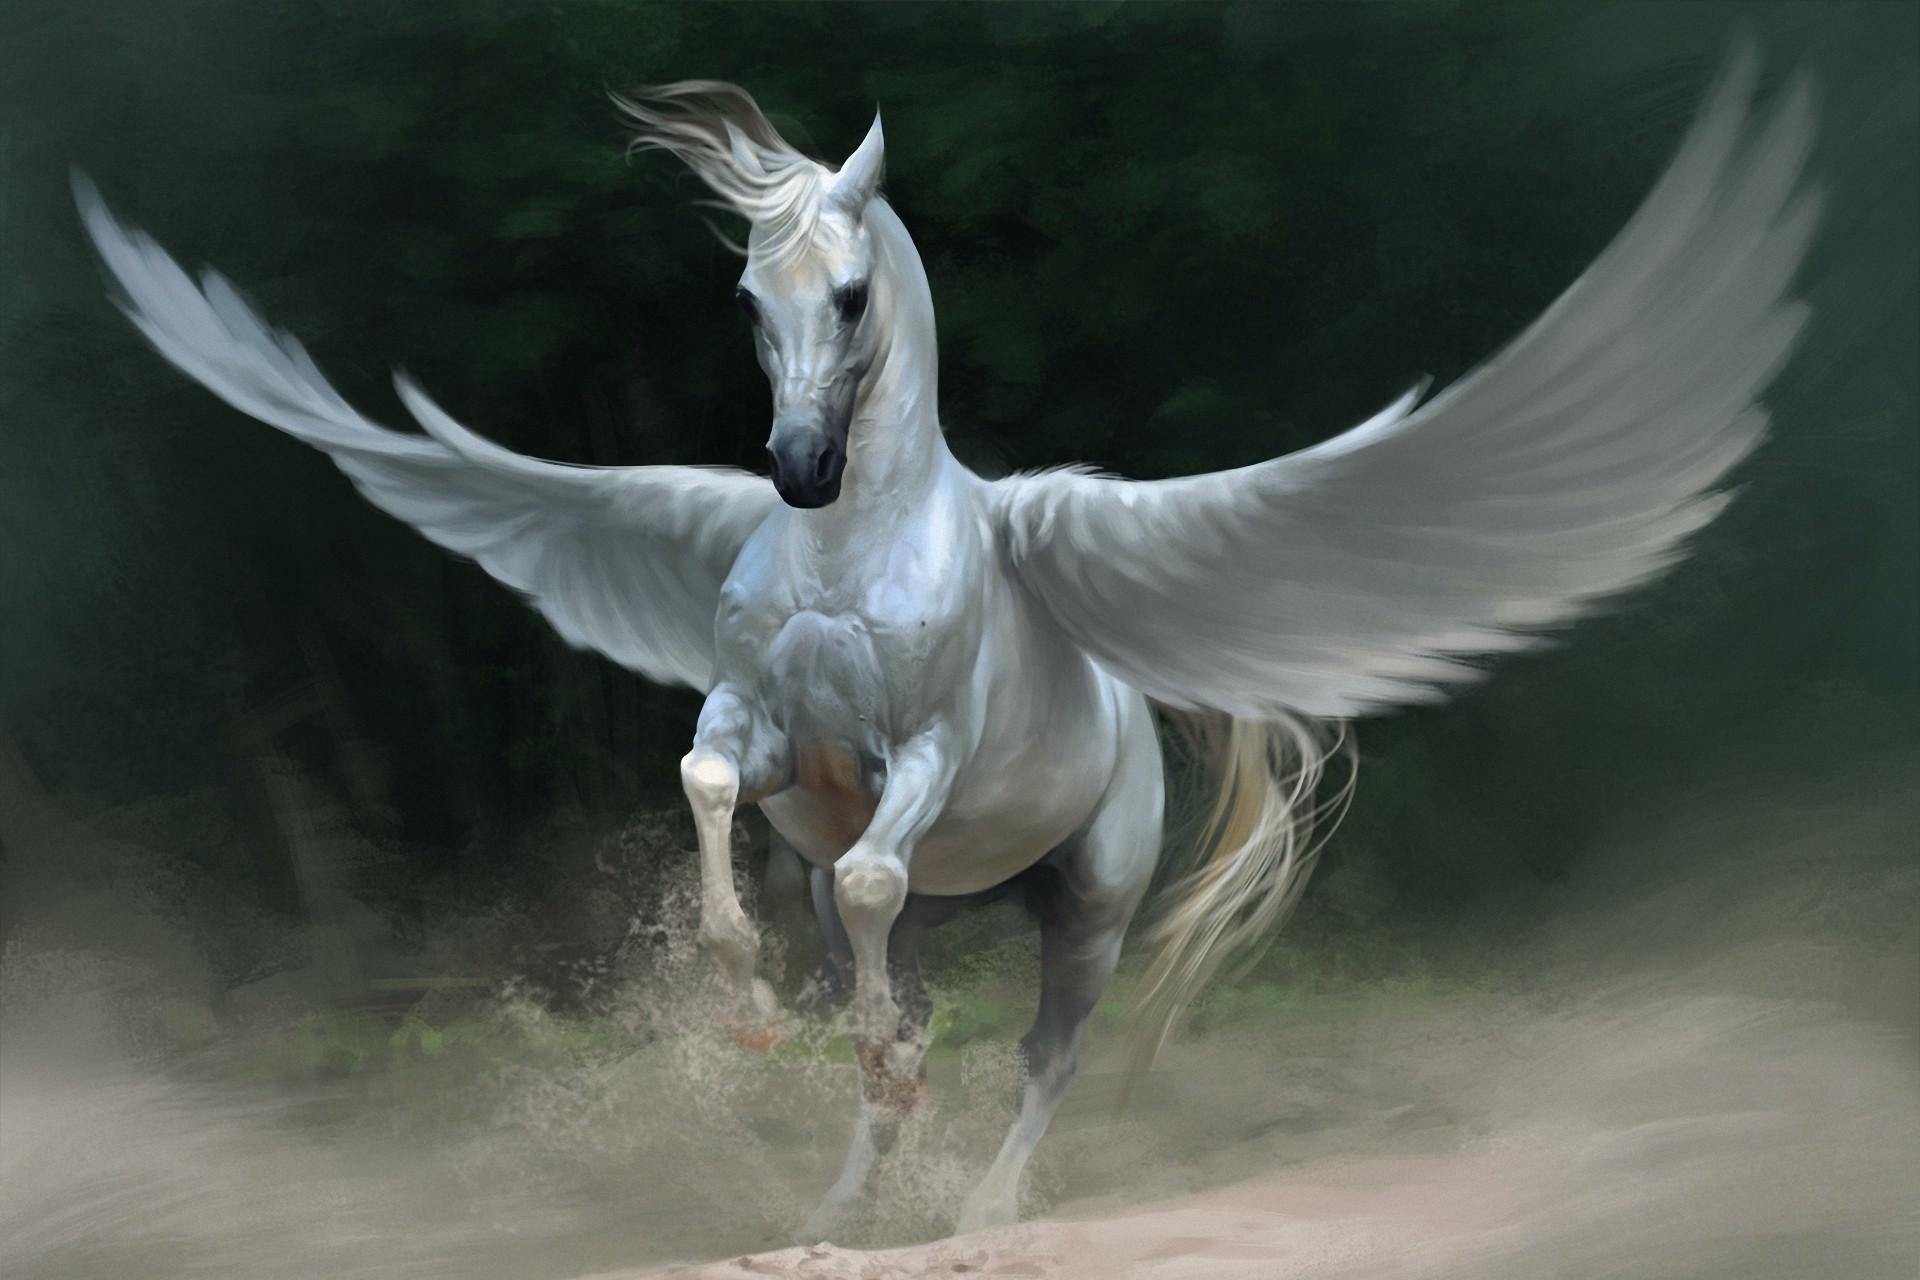 54980 download wallpaper Fantasy, Pegasus, Horse, Wings screensavers and pictures for free